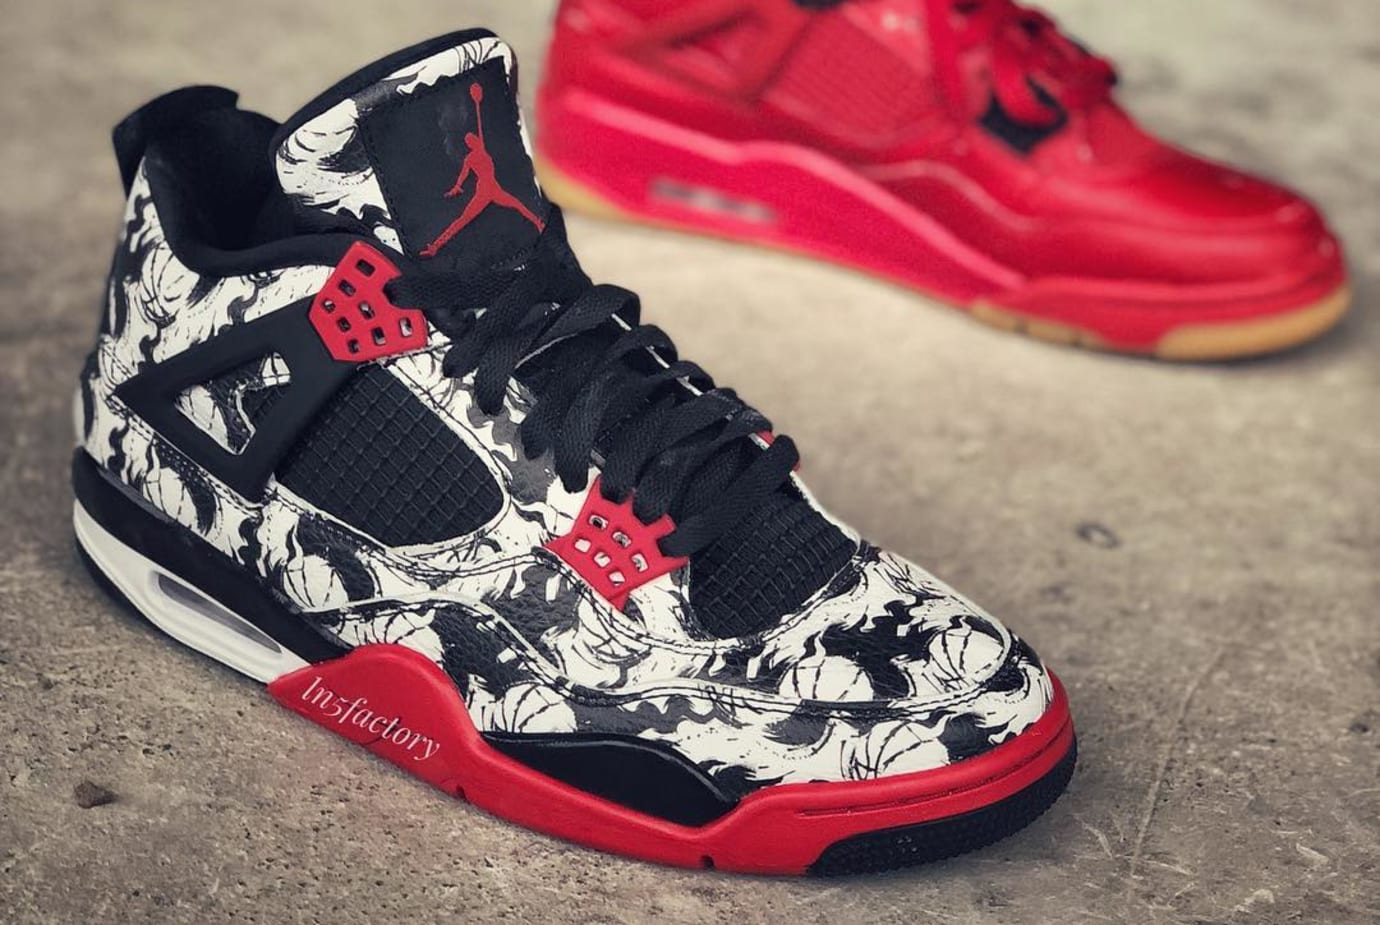 Air Jordan 4 Graphic Print Early Look Sole Collector